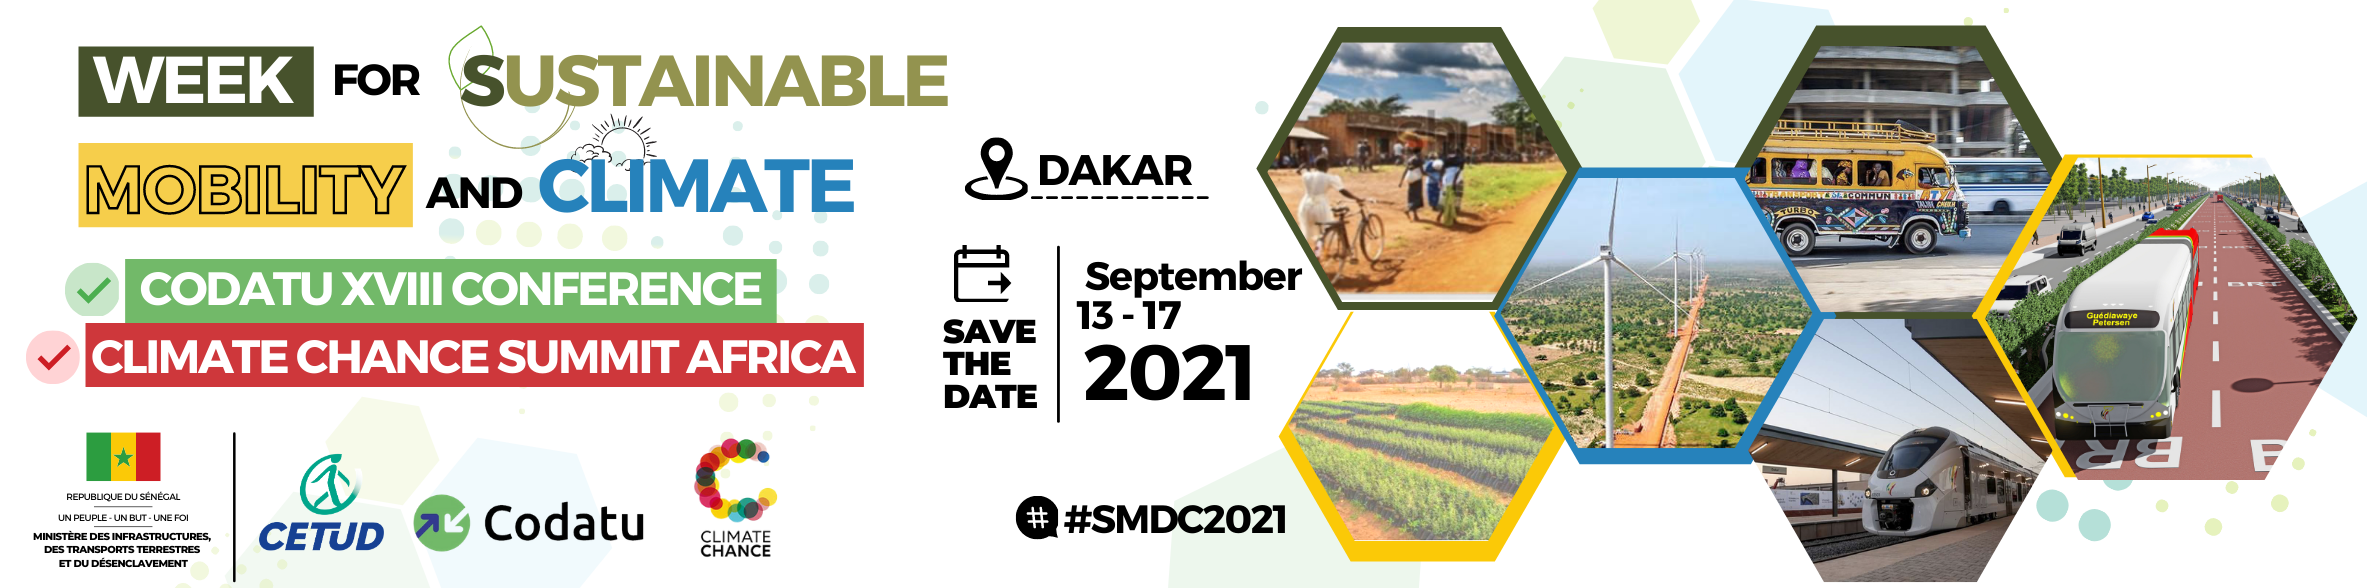 SAVE THE DATE: the Dakar Week for Sustainable Mobility and Climate 2021 will take place 13th-17th September 2021